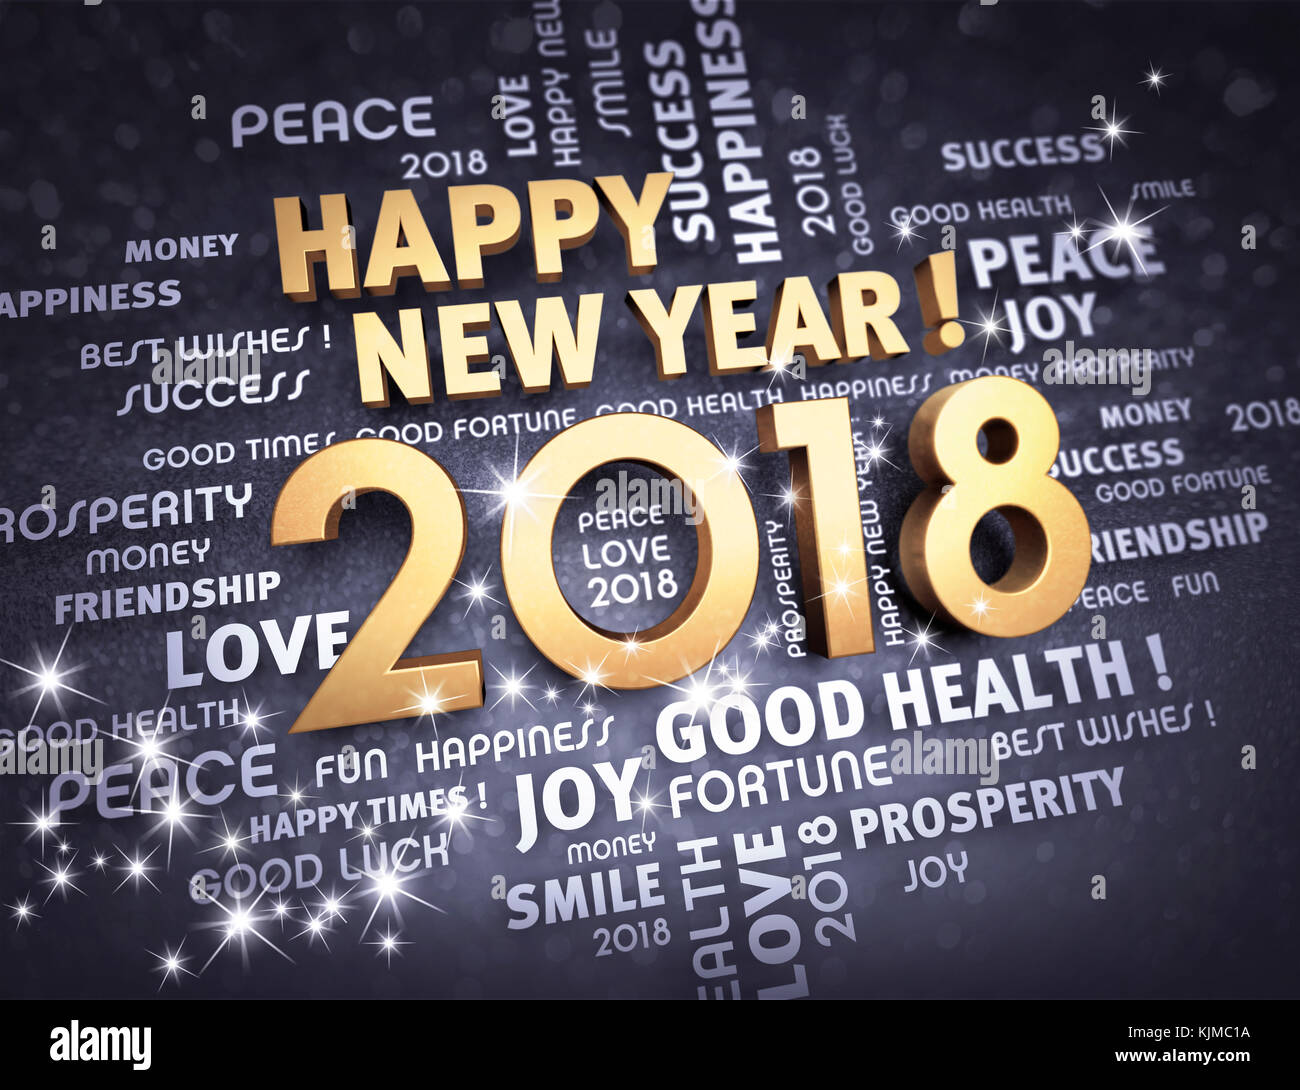 greetings and new year date 2018 colored in gold glittering on a black background 3d illustration